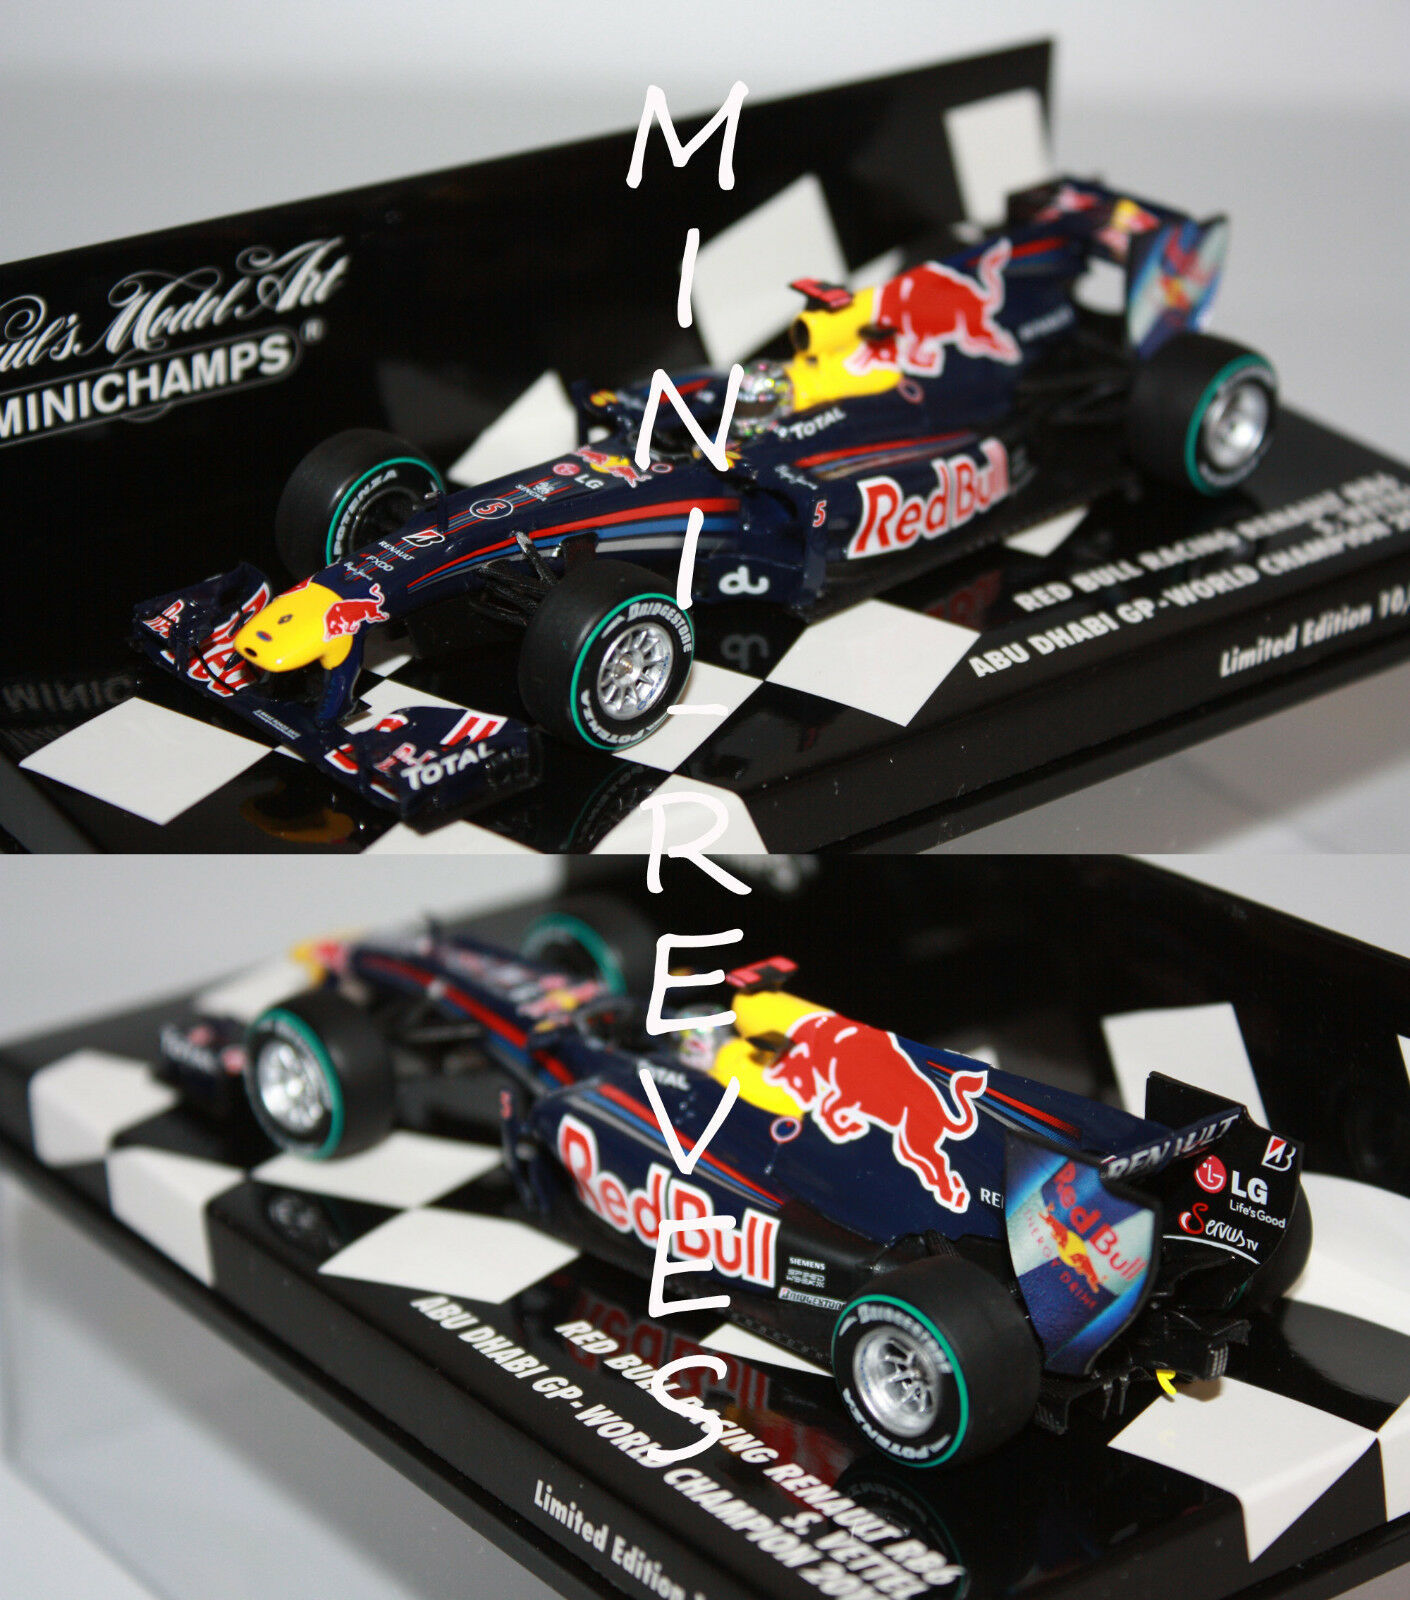 Minichamps F1 Red Bull Racing RB6 S. Vettel WC 2010 410100105 | Outlet Online Store